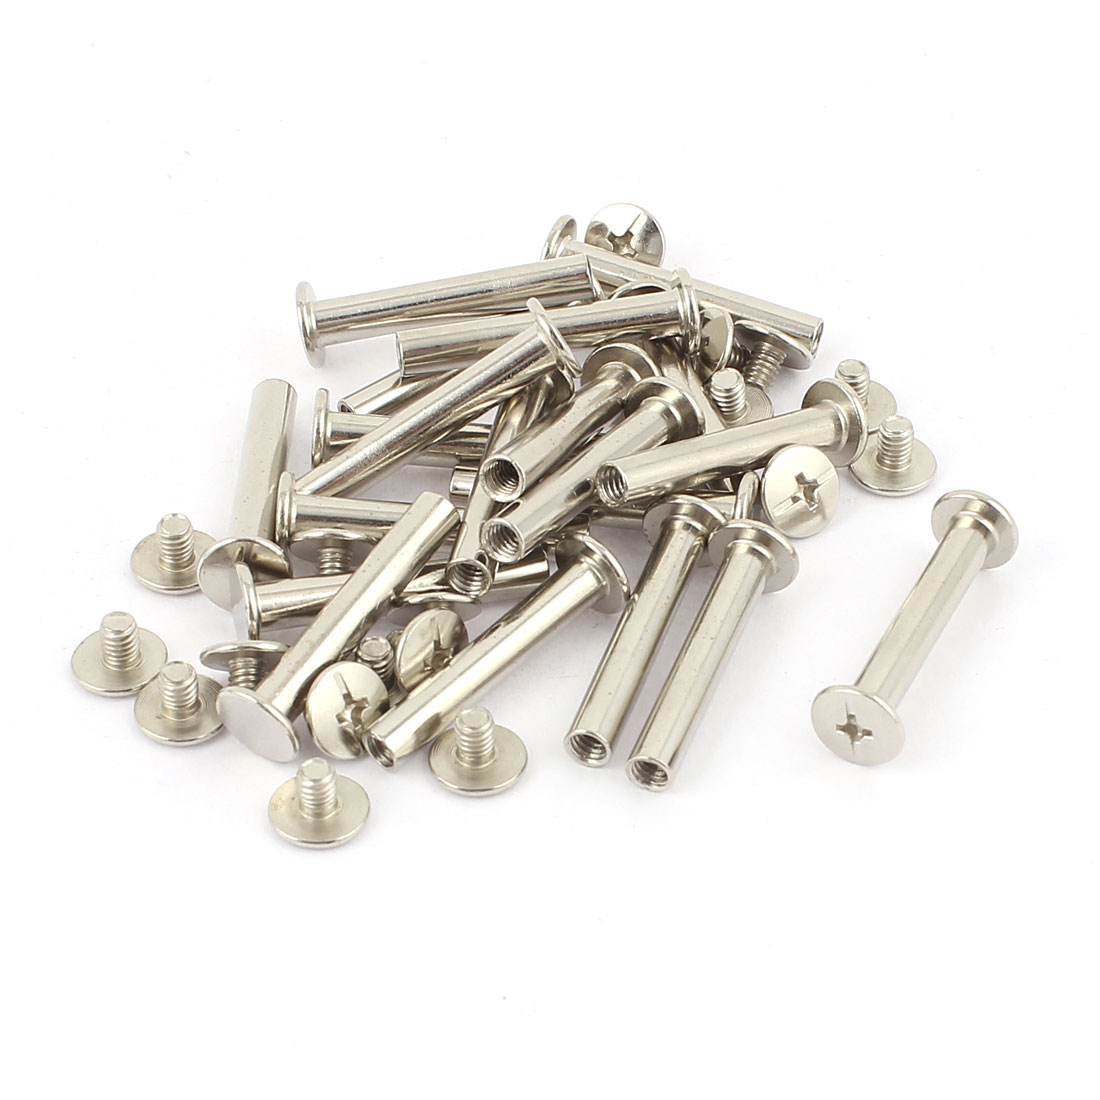 20Pcs M5x30mm Nickel Plated Binding Screw Post for Scrapbook Photo Albums